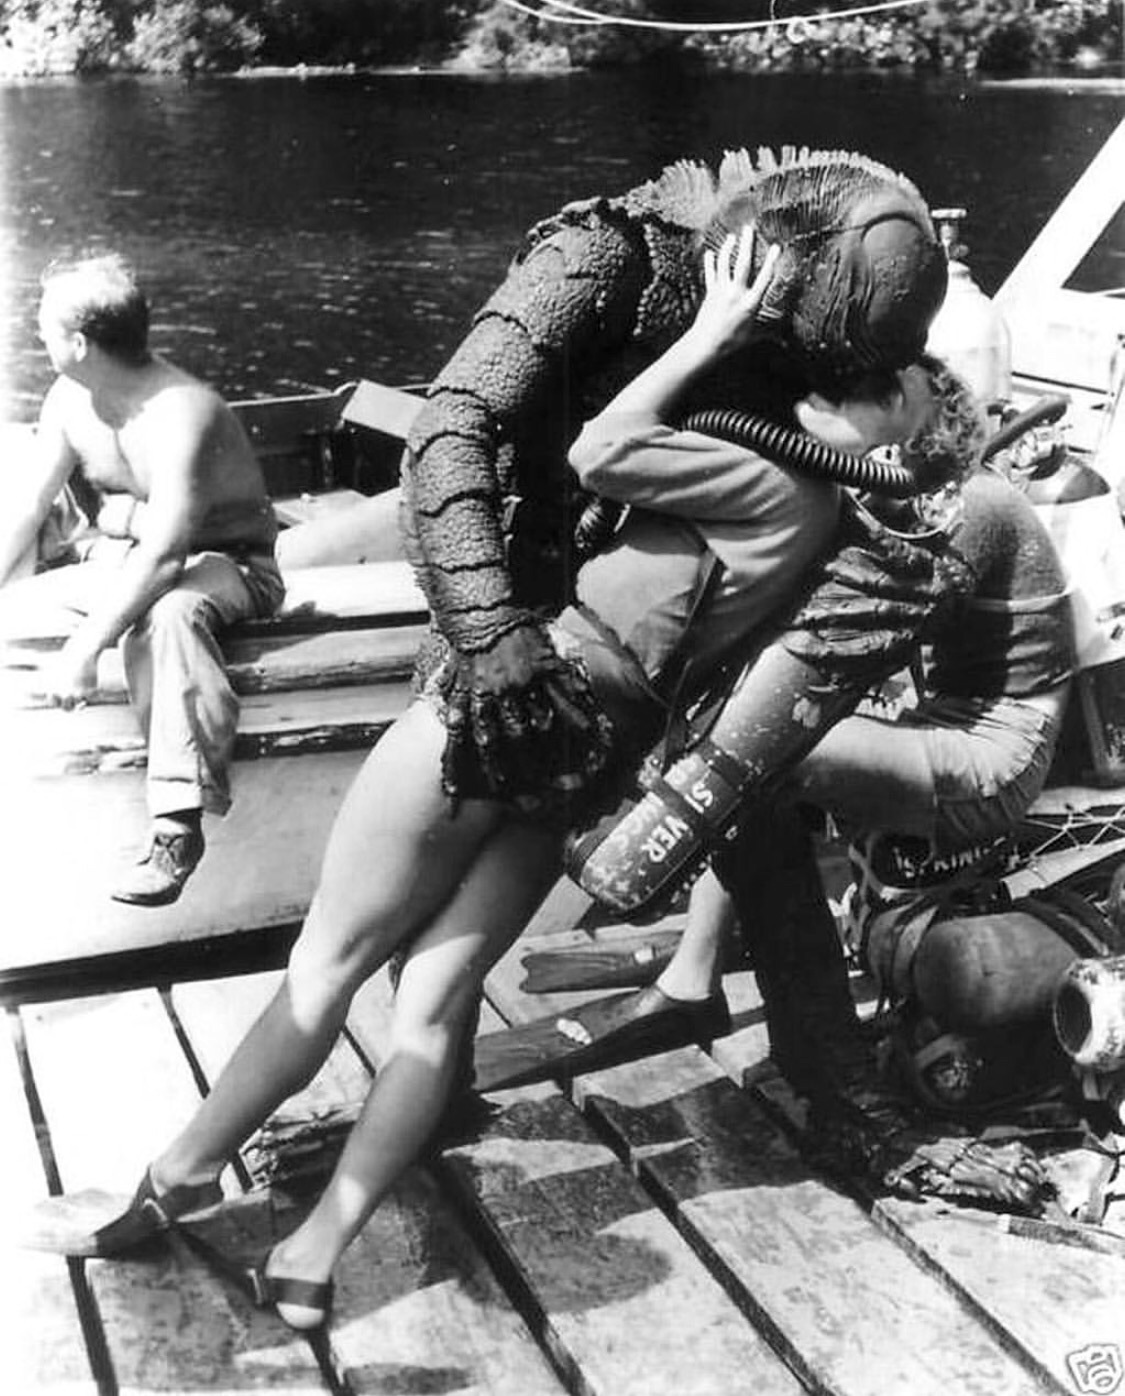 20 - 1953. Behind the scenes of Creature from the Black Lagoon.